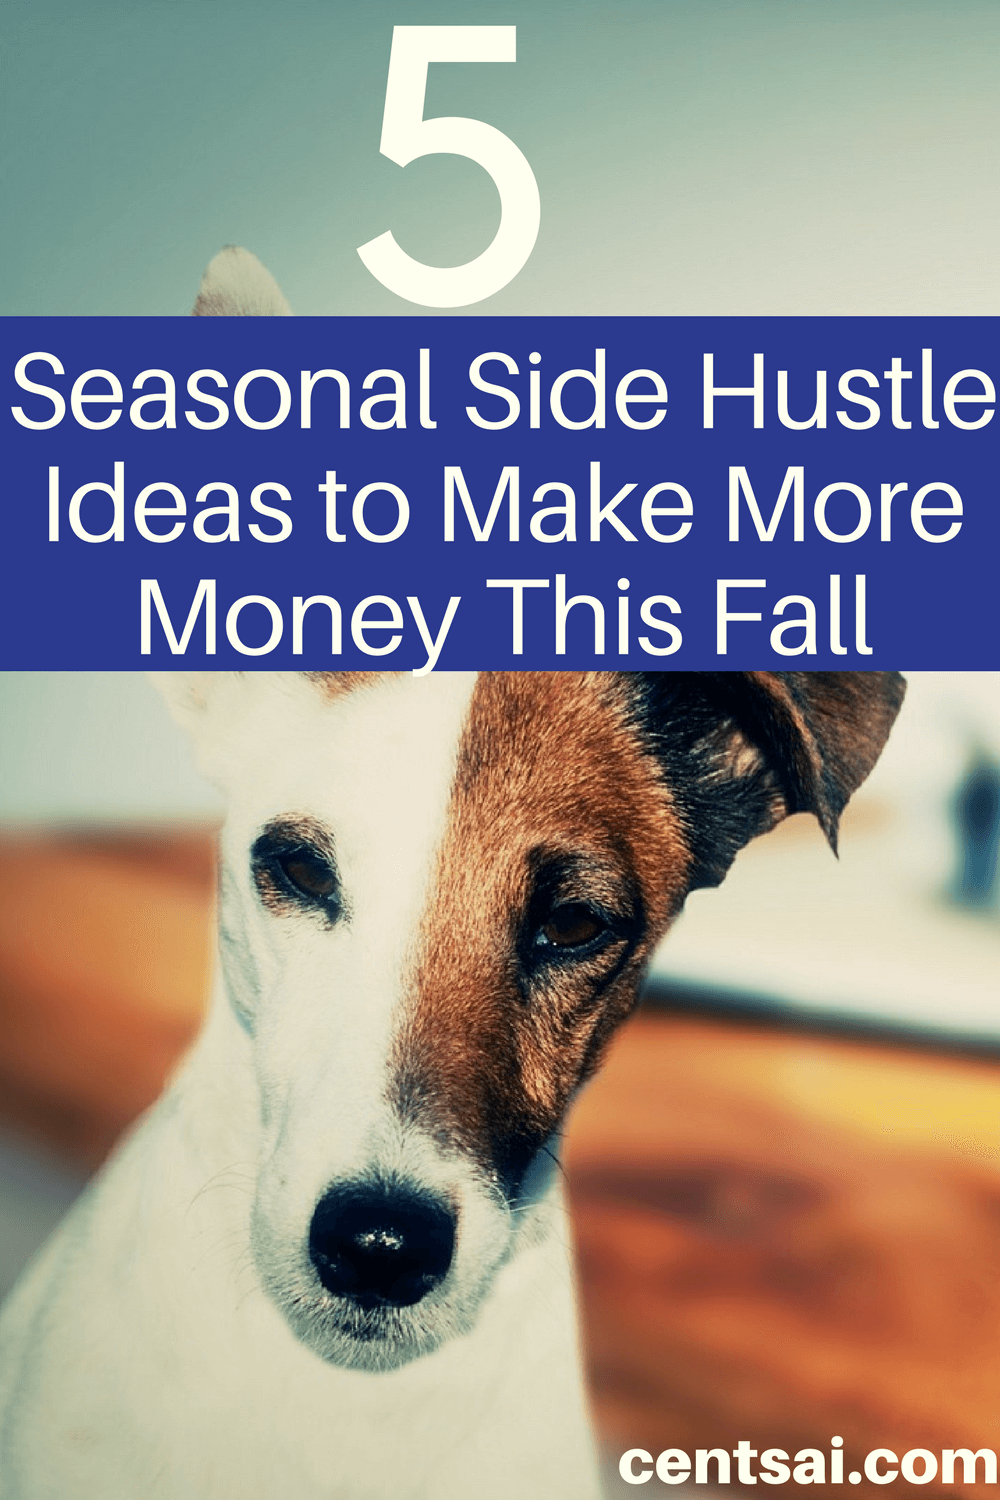 Whether you need money for college or gifts, a good side hustle can beef up your savings. Why not try one of these fall side hustle ideas?